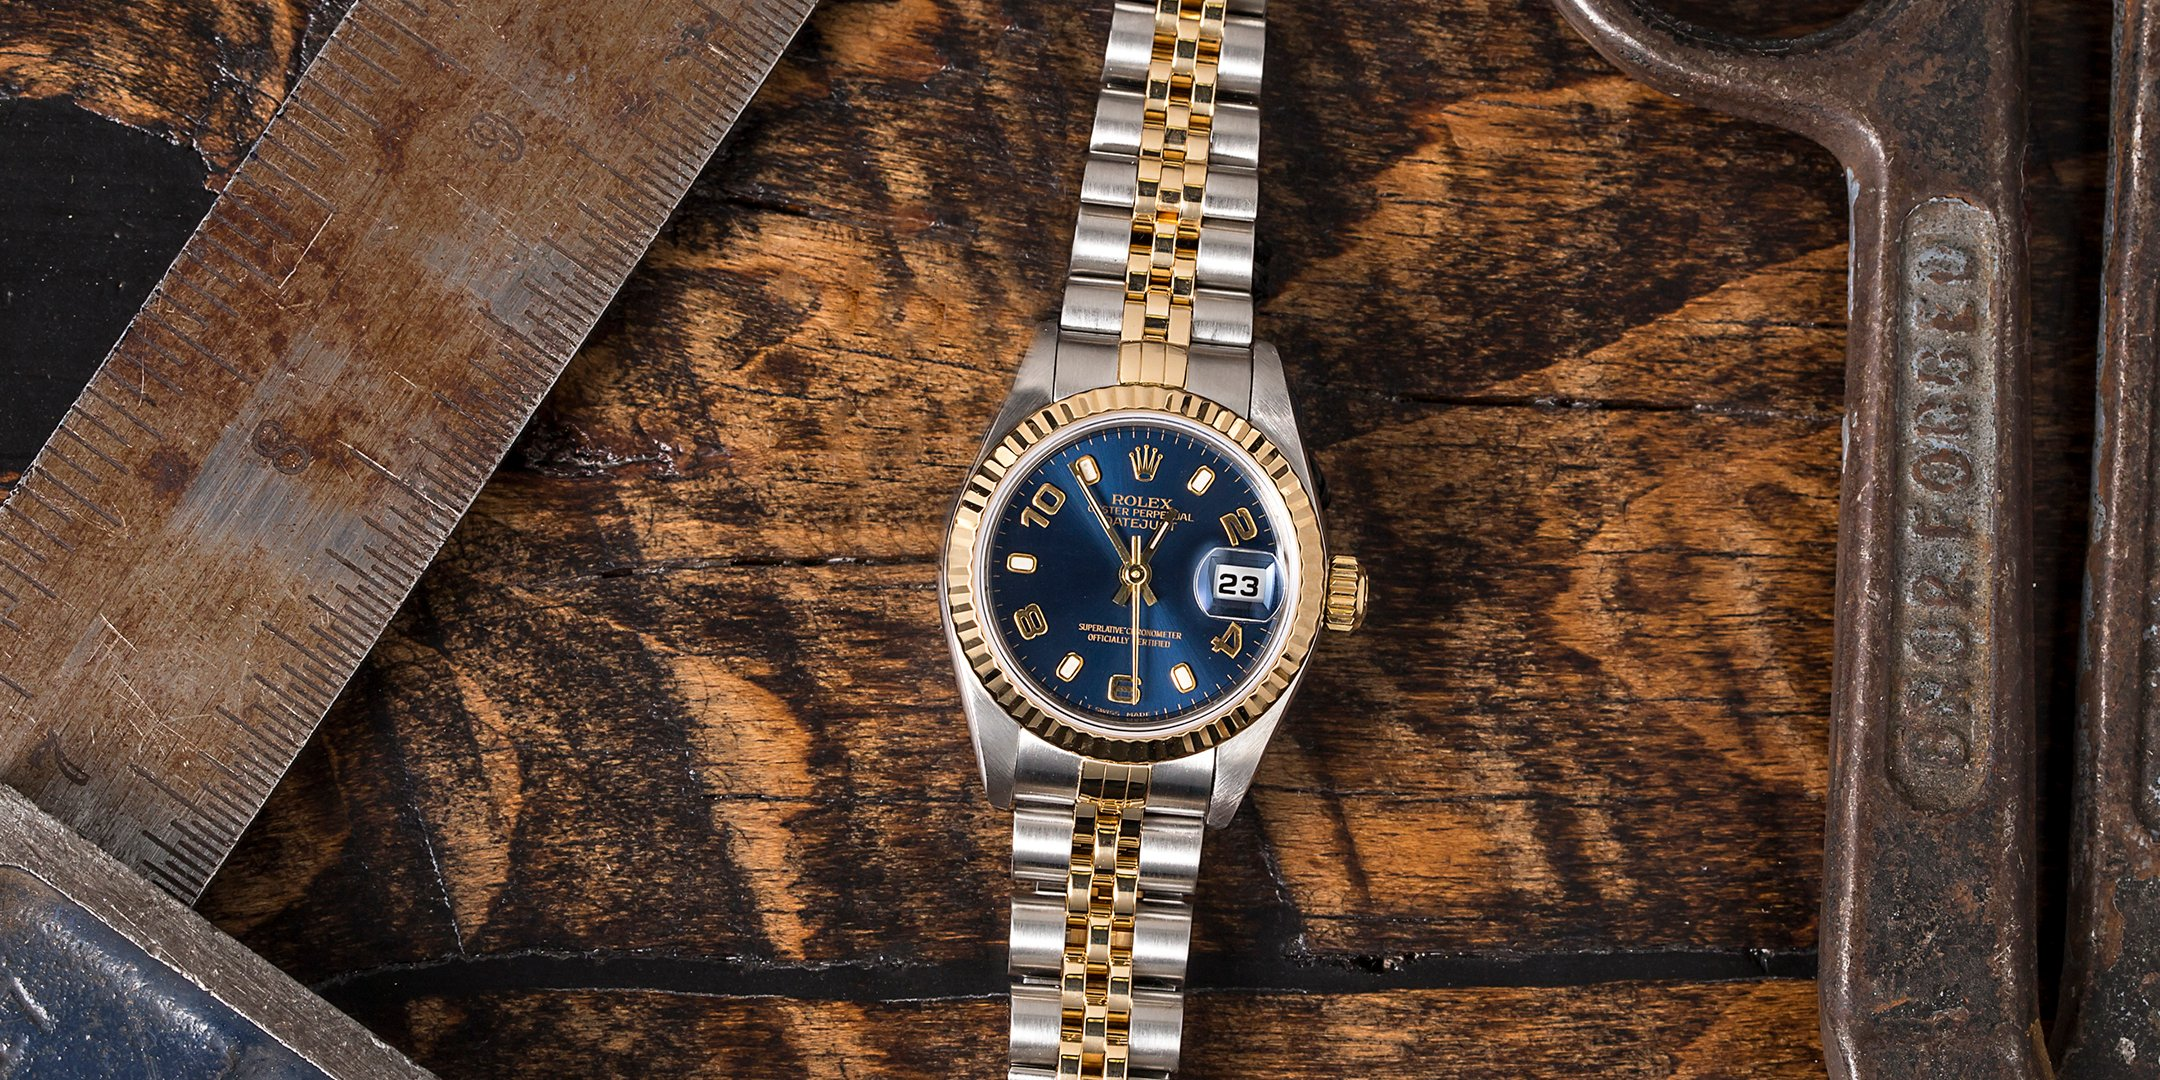 What Is the Most Worn Rolex Watch? Lady-Datejust Two-Tone